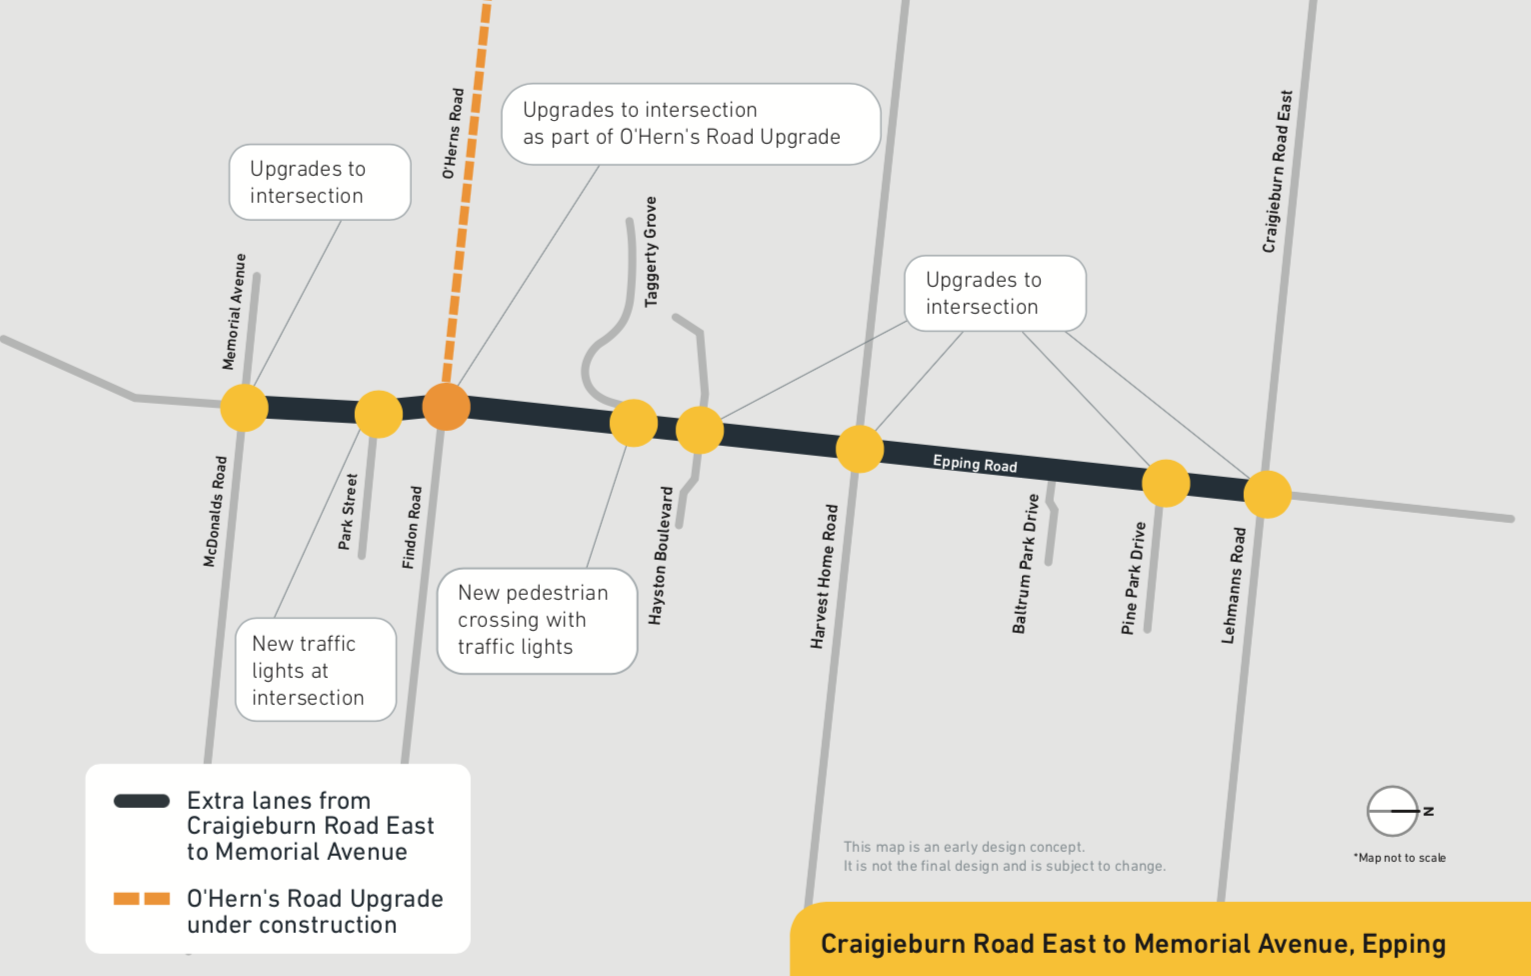 As part of the upgrade, we plan to: • add an extra lane in each direction between Craigieburn Road East and Memorial Avenue • upgrade intersections including at Craigieburn Road East and Harvest Home Road • install new pedestrian traffic signals at Taggerty Grove • build a walking and cycling path • install safety barriers along the road.